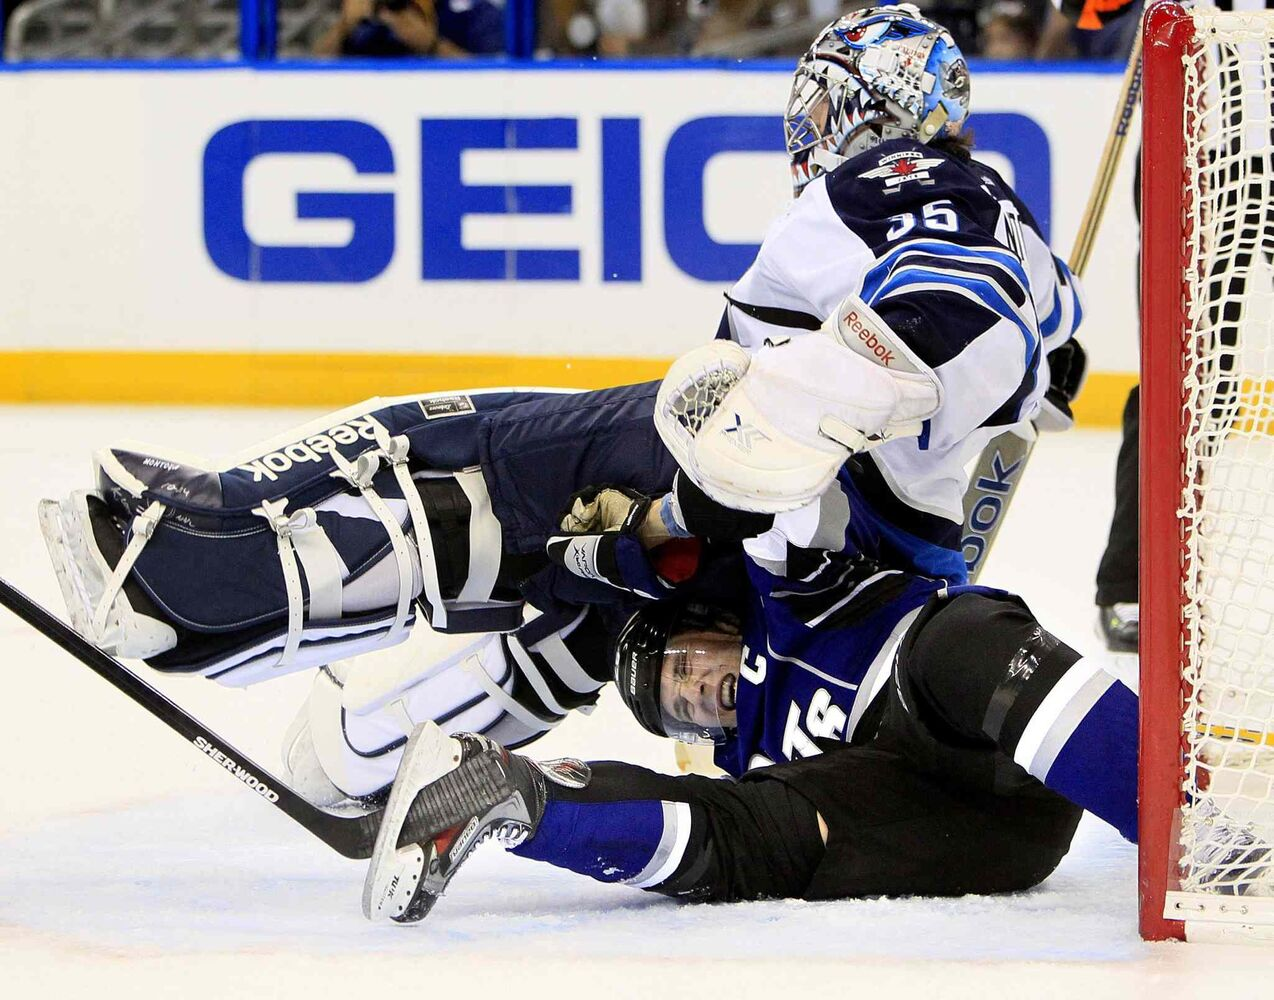 The Tampa Bay Lightning's Martin St. Louis (bottom) is crushed under Winnipeg Jets goalie Al Montoya in the crease during the first period.